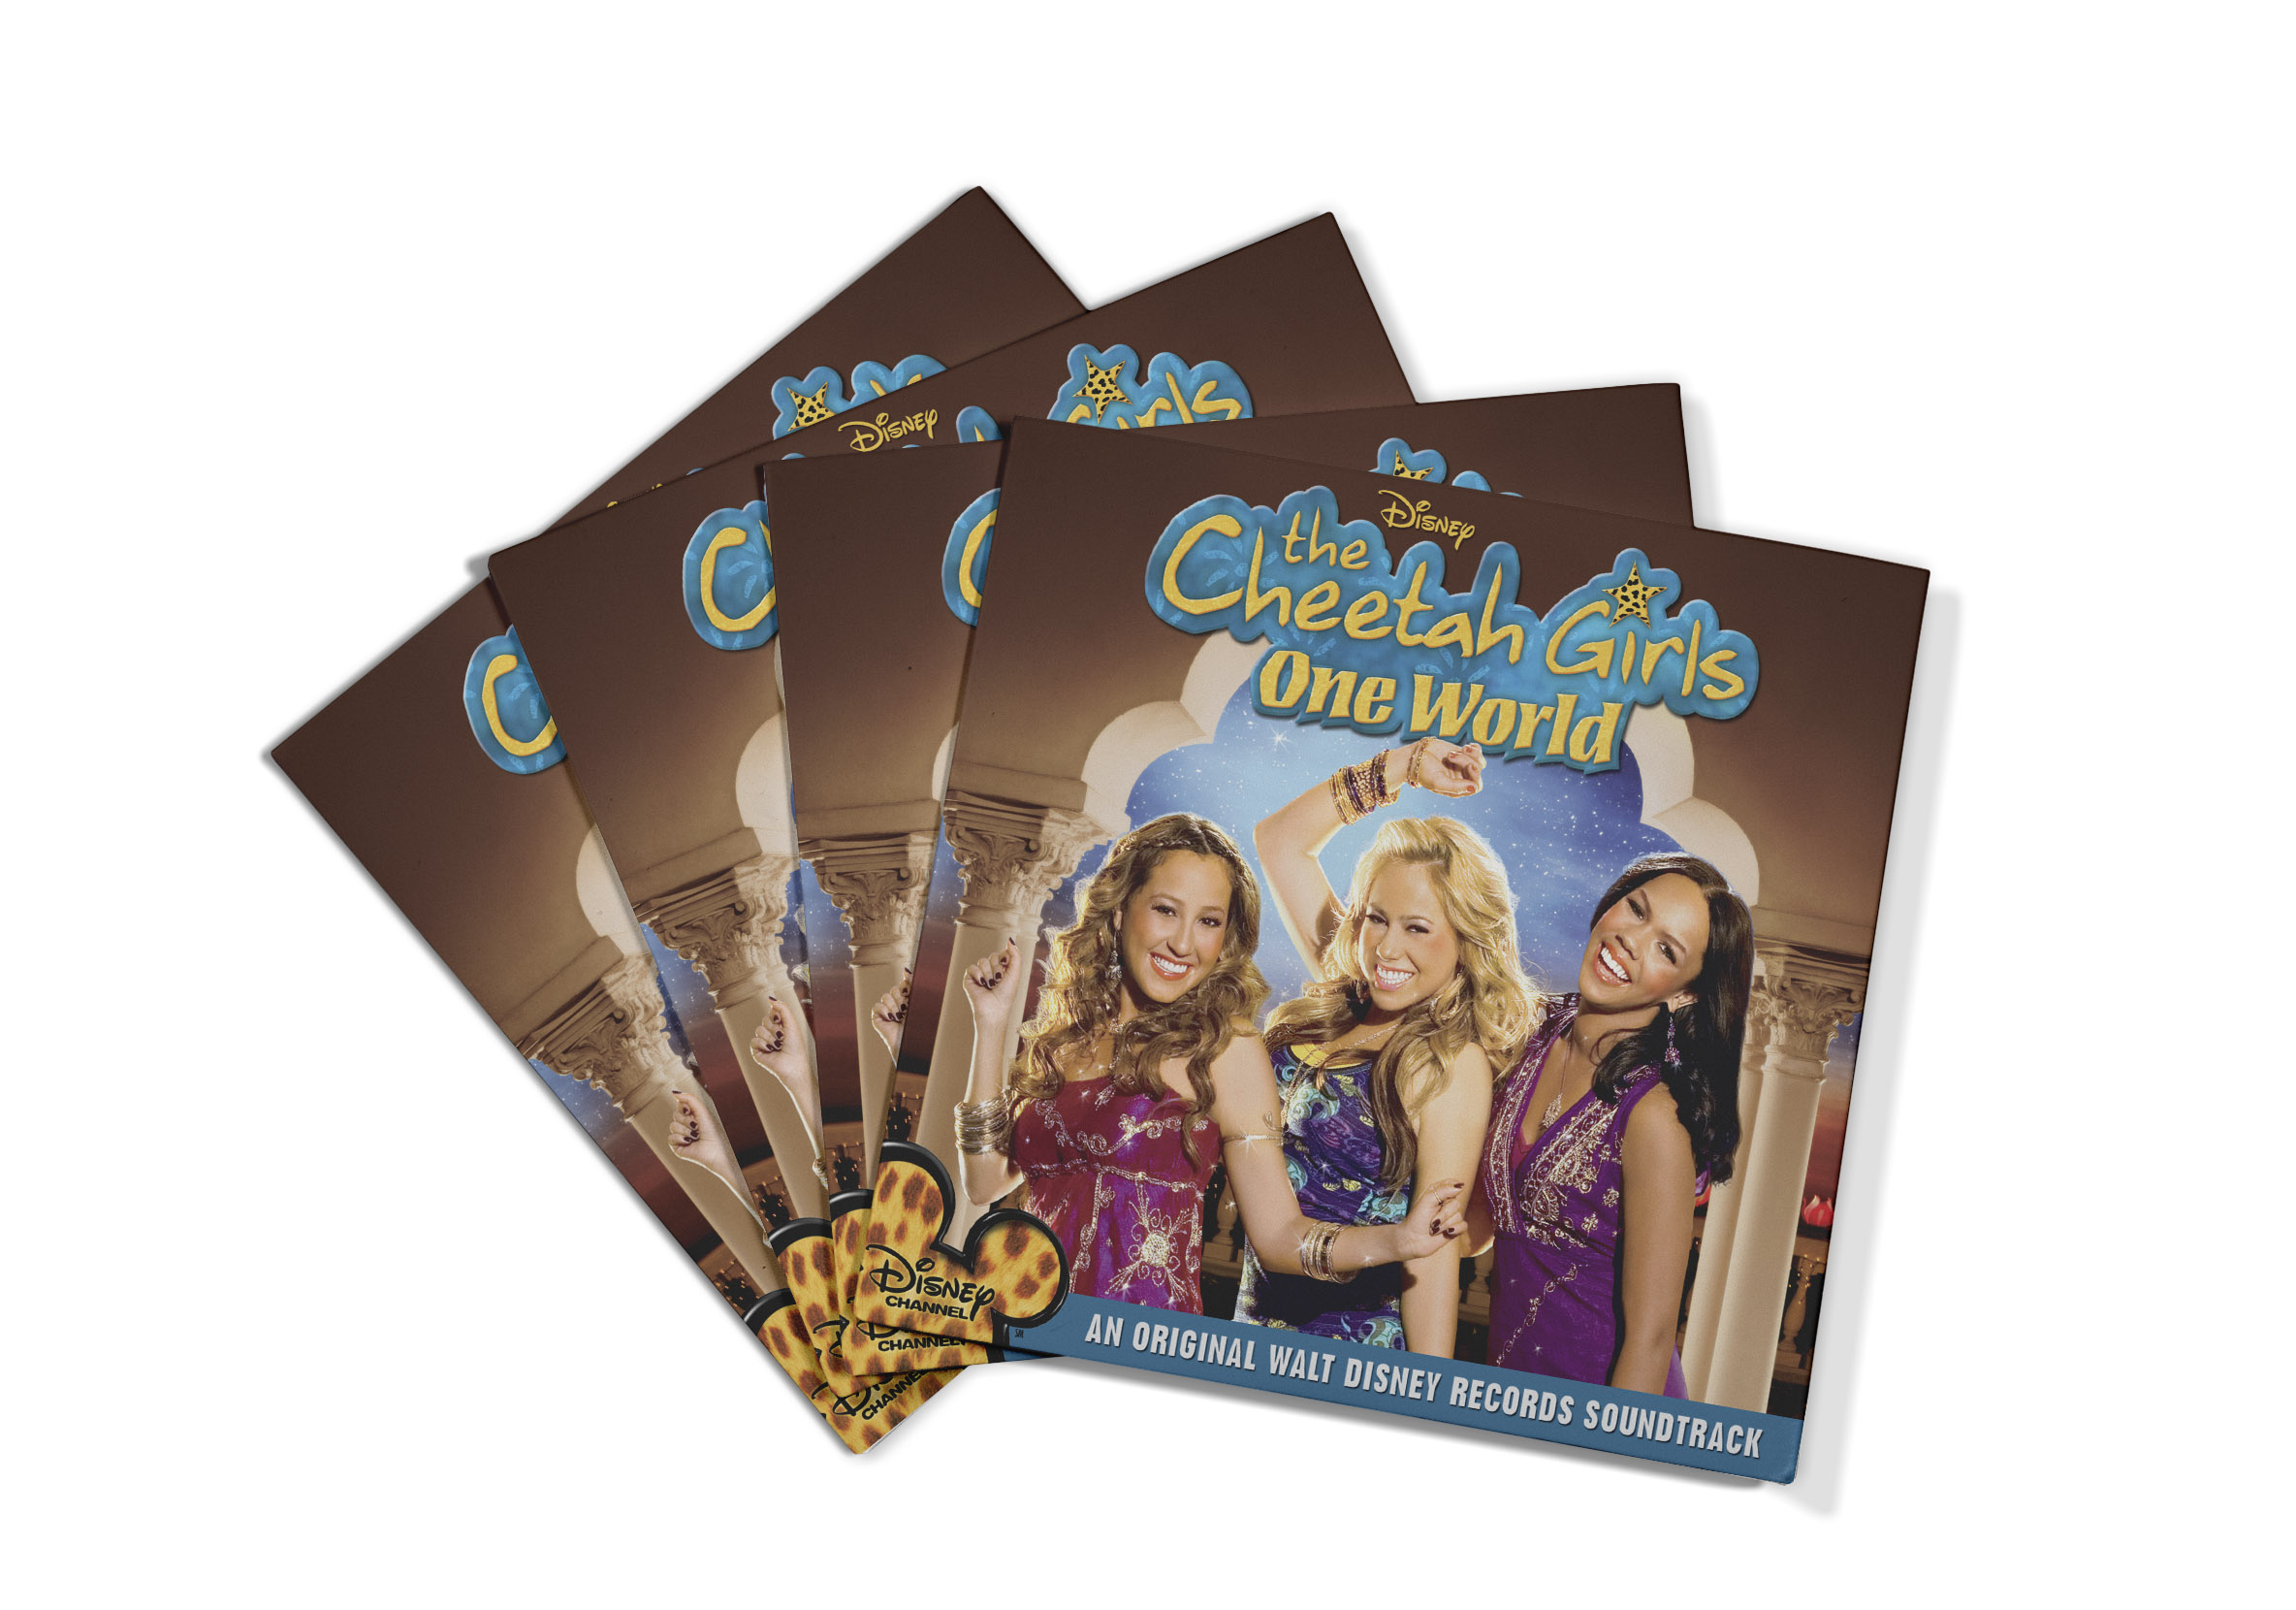 The follow-up movie to  The Cheetah Girls 2 ,  The Cheetah Girls One World  took place in India and the art created for the soundtrack was heavily influenced by the setting.